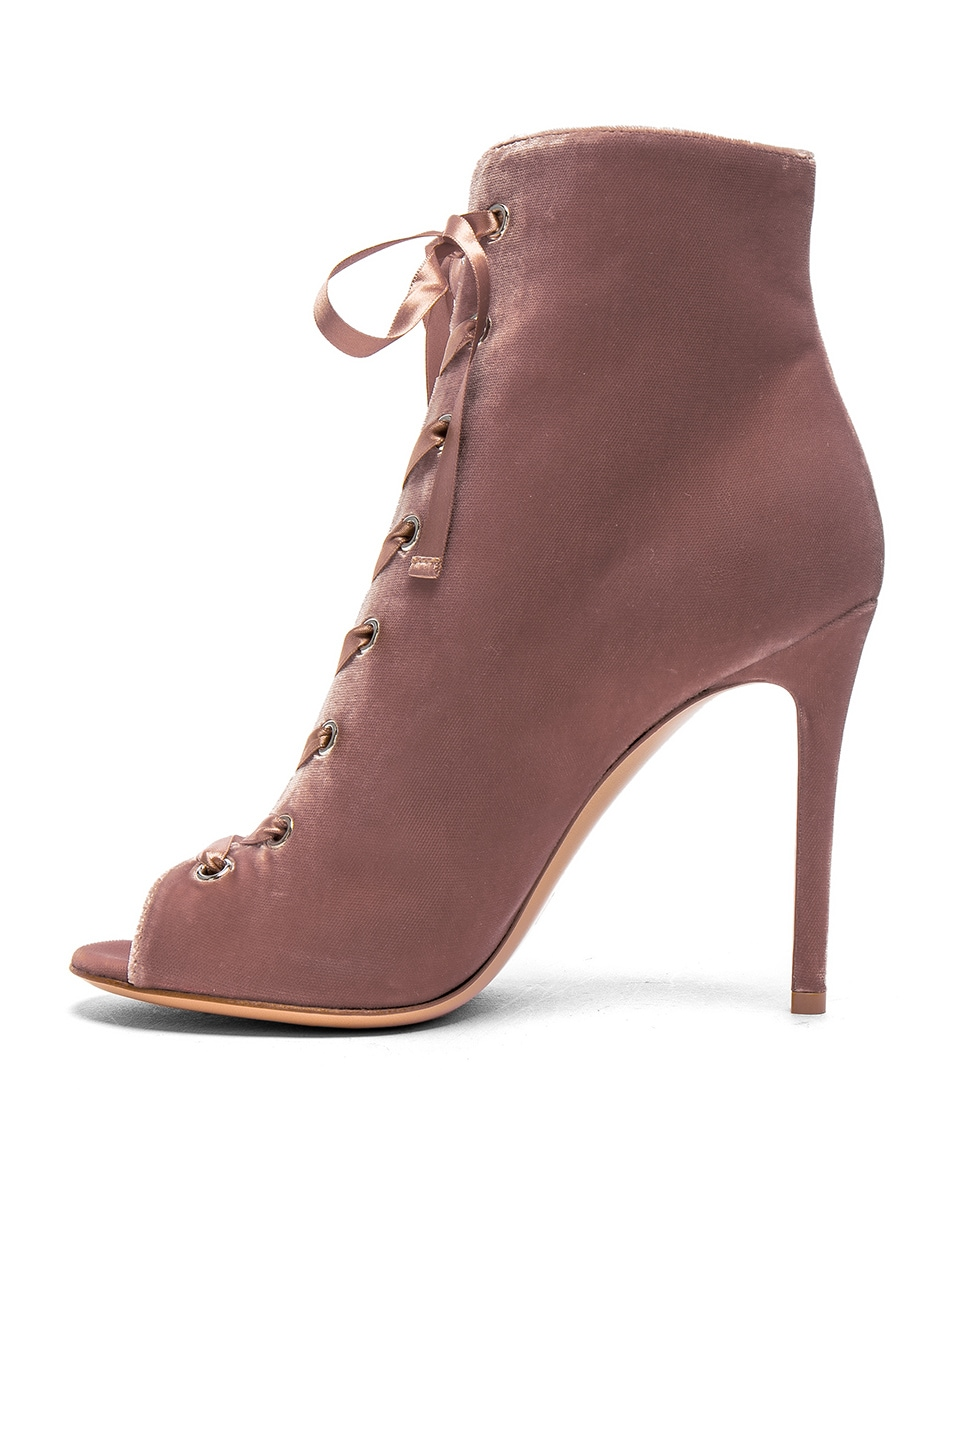 Image 5 of Gianvito Rossi for FWRD Velvet Marie Lace Up Booties in Rosie